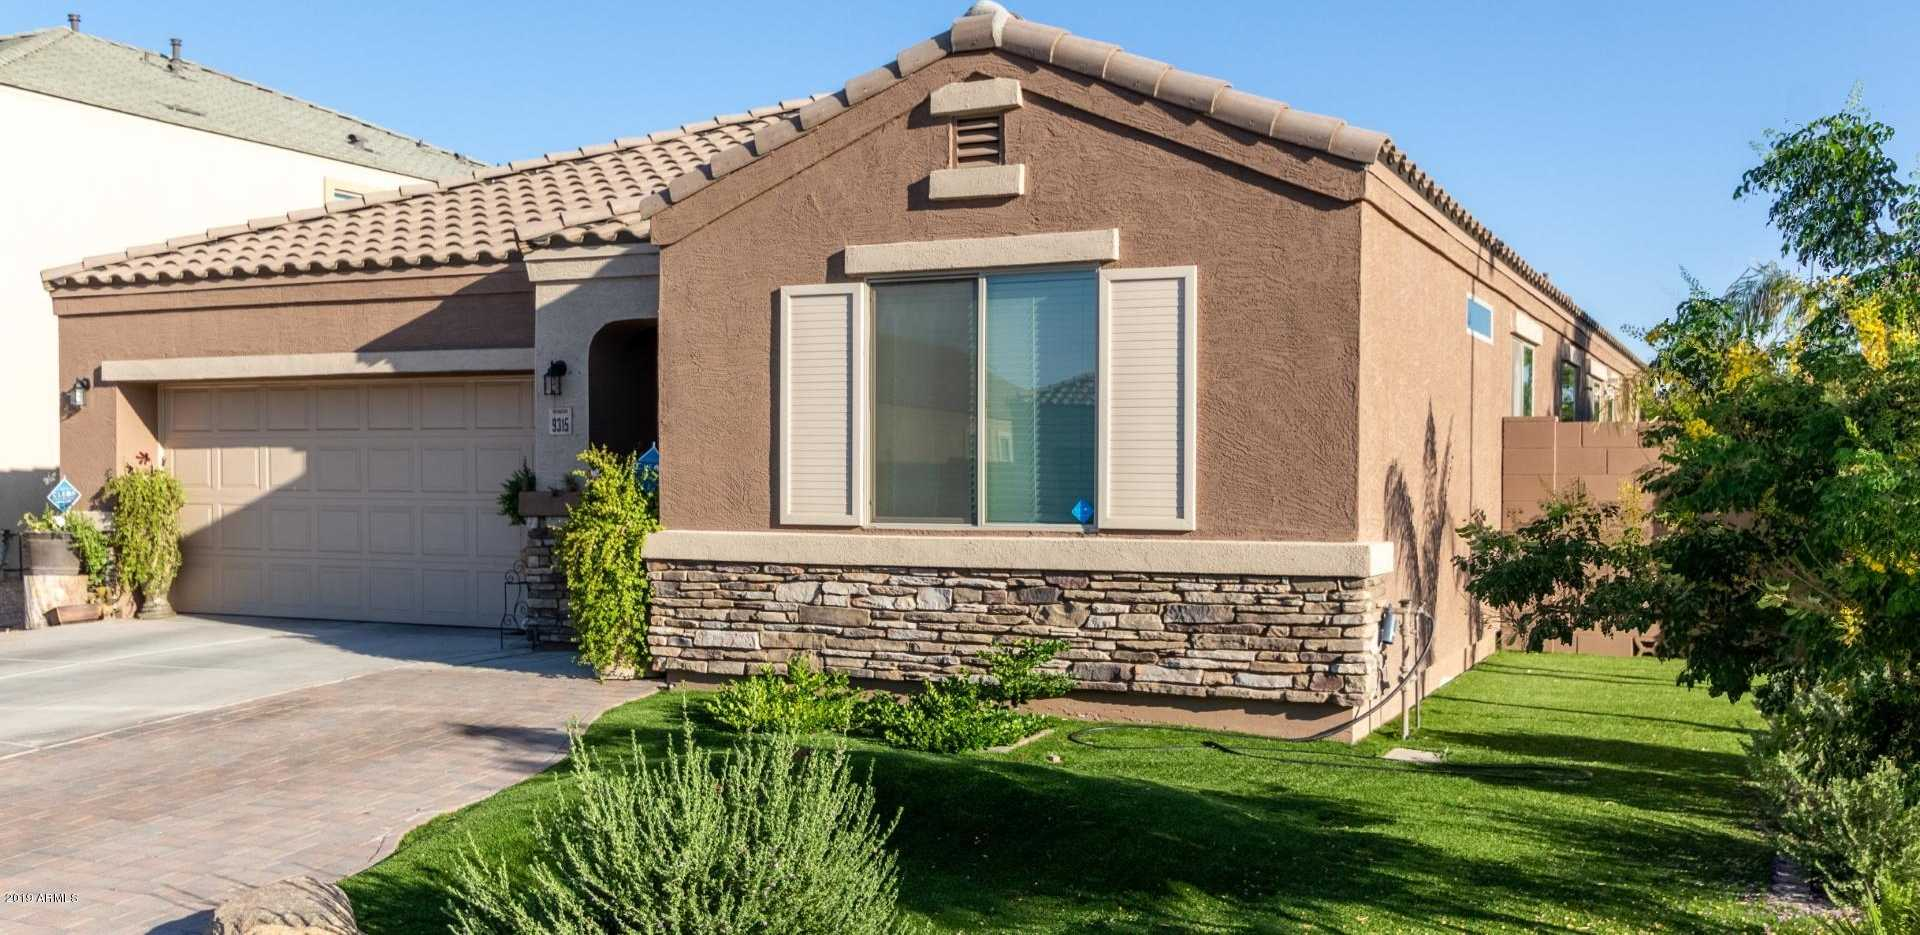 $319,984 - 4Br/3Ba - Home for Sale in Copper Cove Phase 2 2nd Amd, Glendale